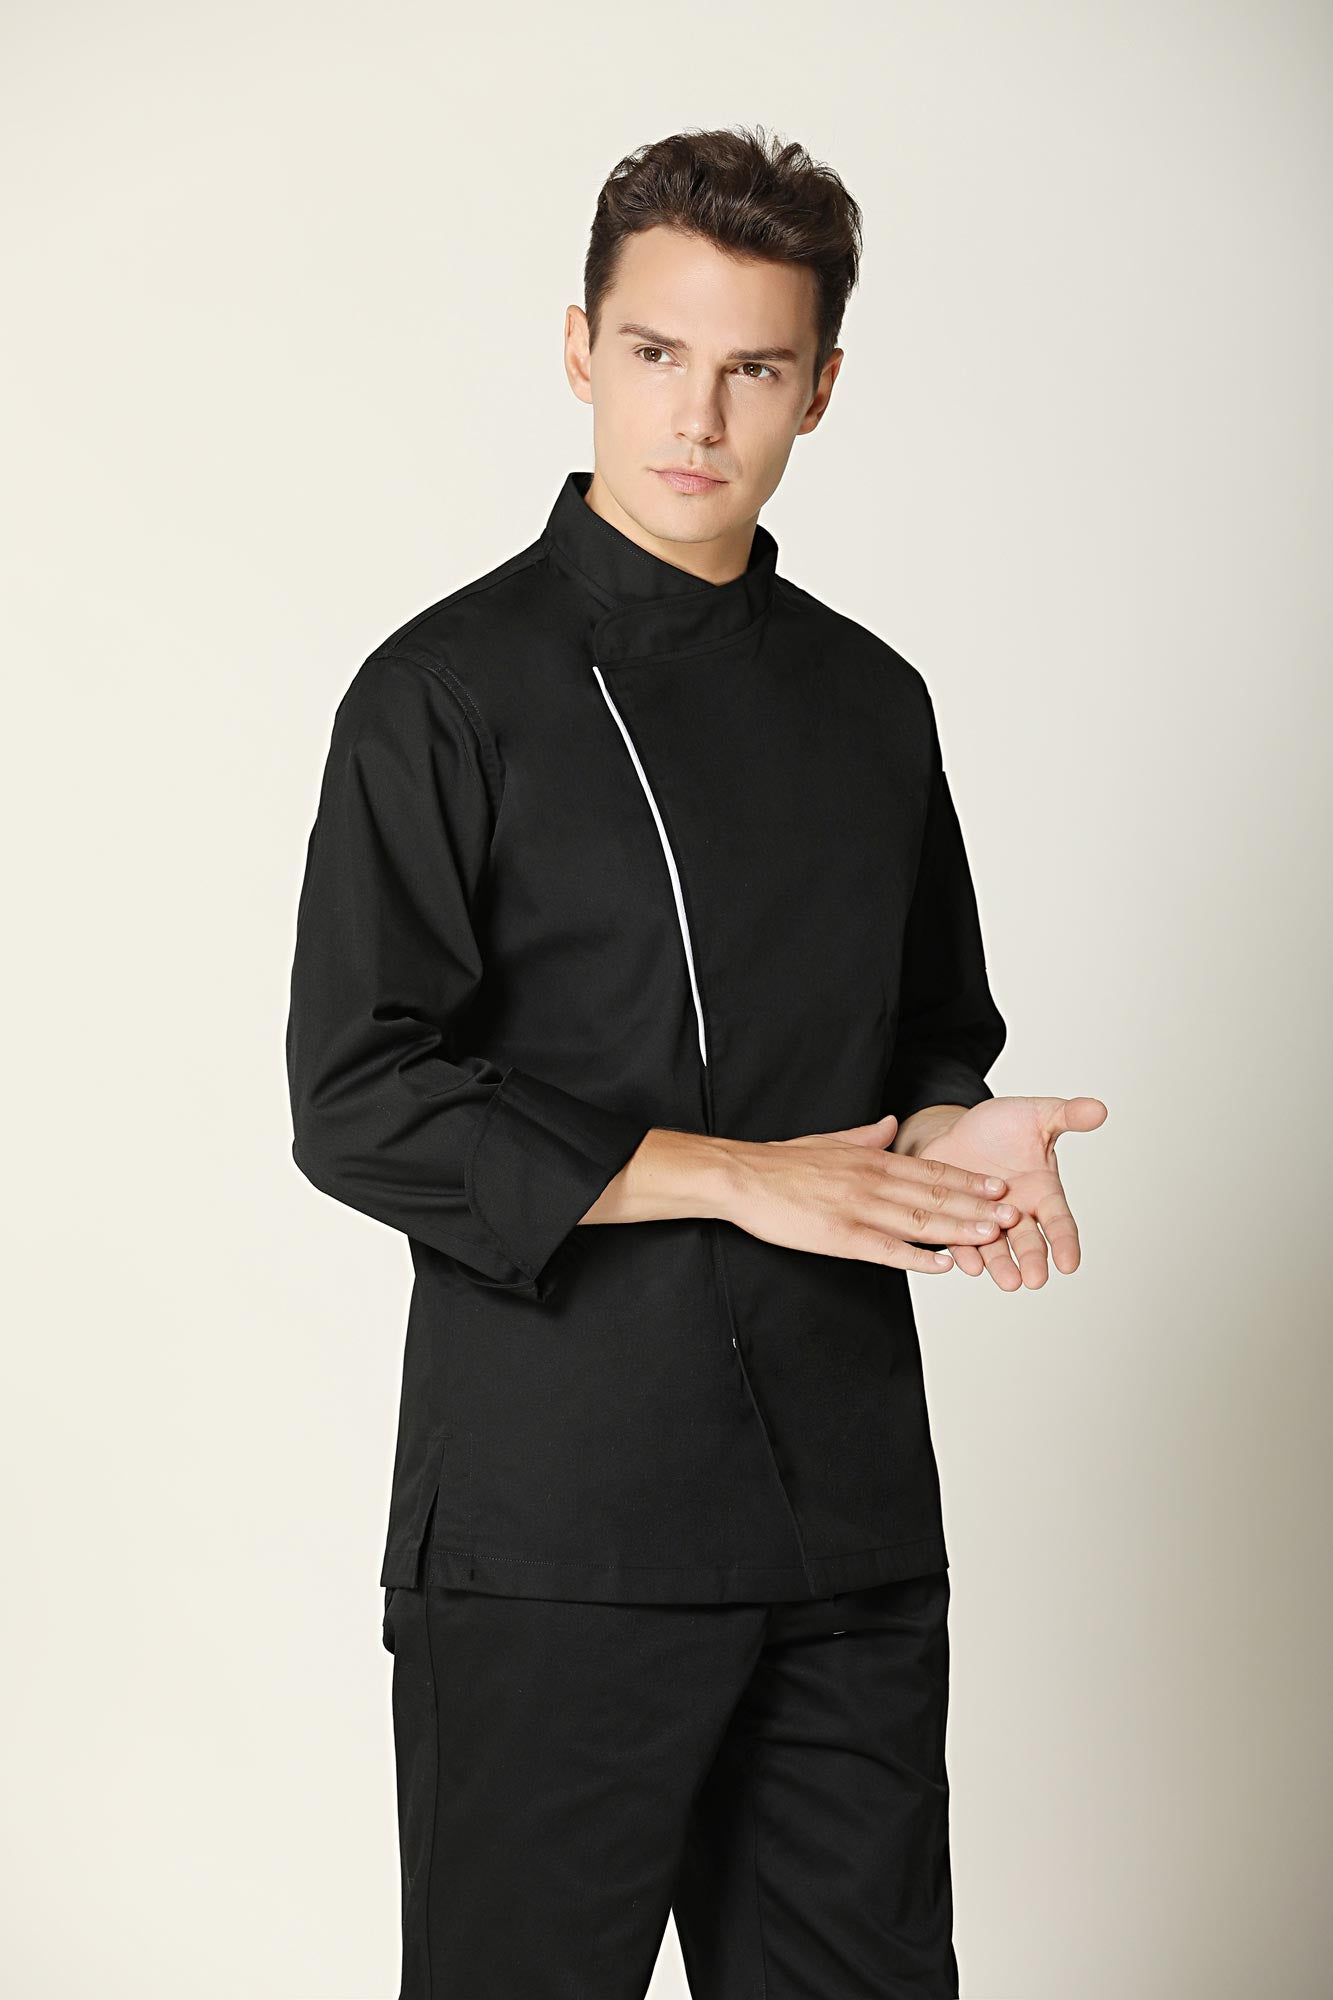 Basil Black Chef Jacket - Sleek and Minimal Style